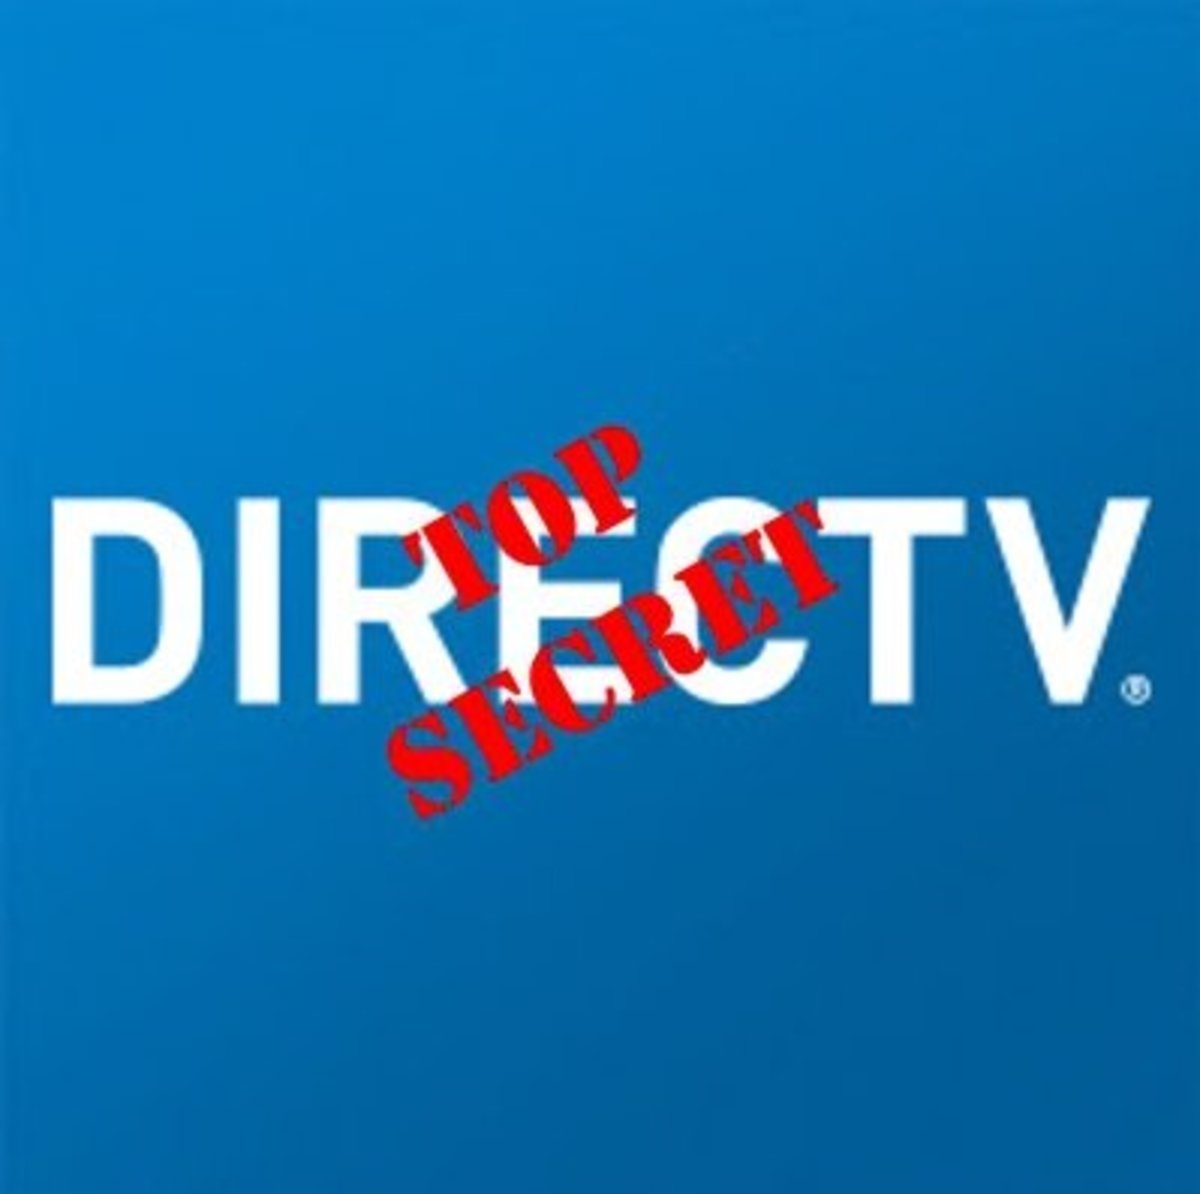 Insider secrets of directv toughnickel also remember that new customers can get a 300 visa gift card when they sign up this offer is only eligible until march 31 2018 solutioingenieria Image collections